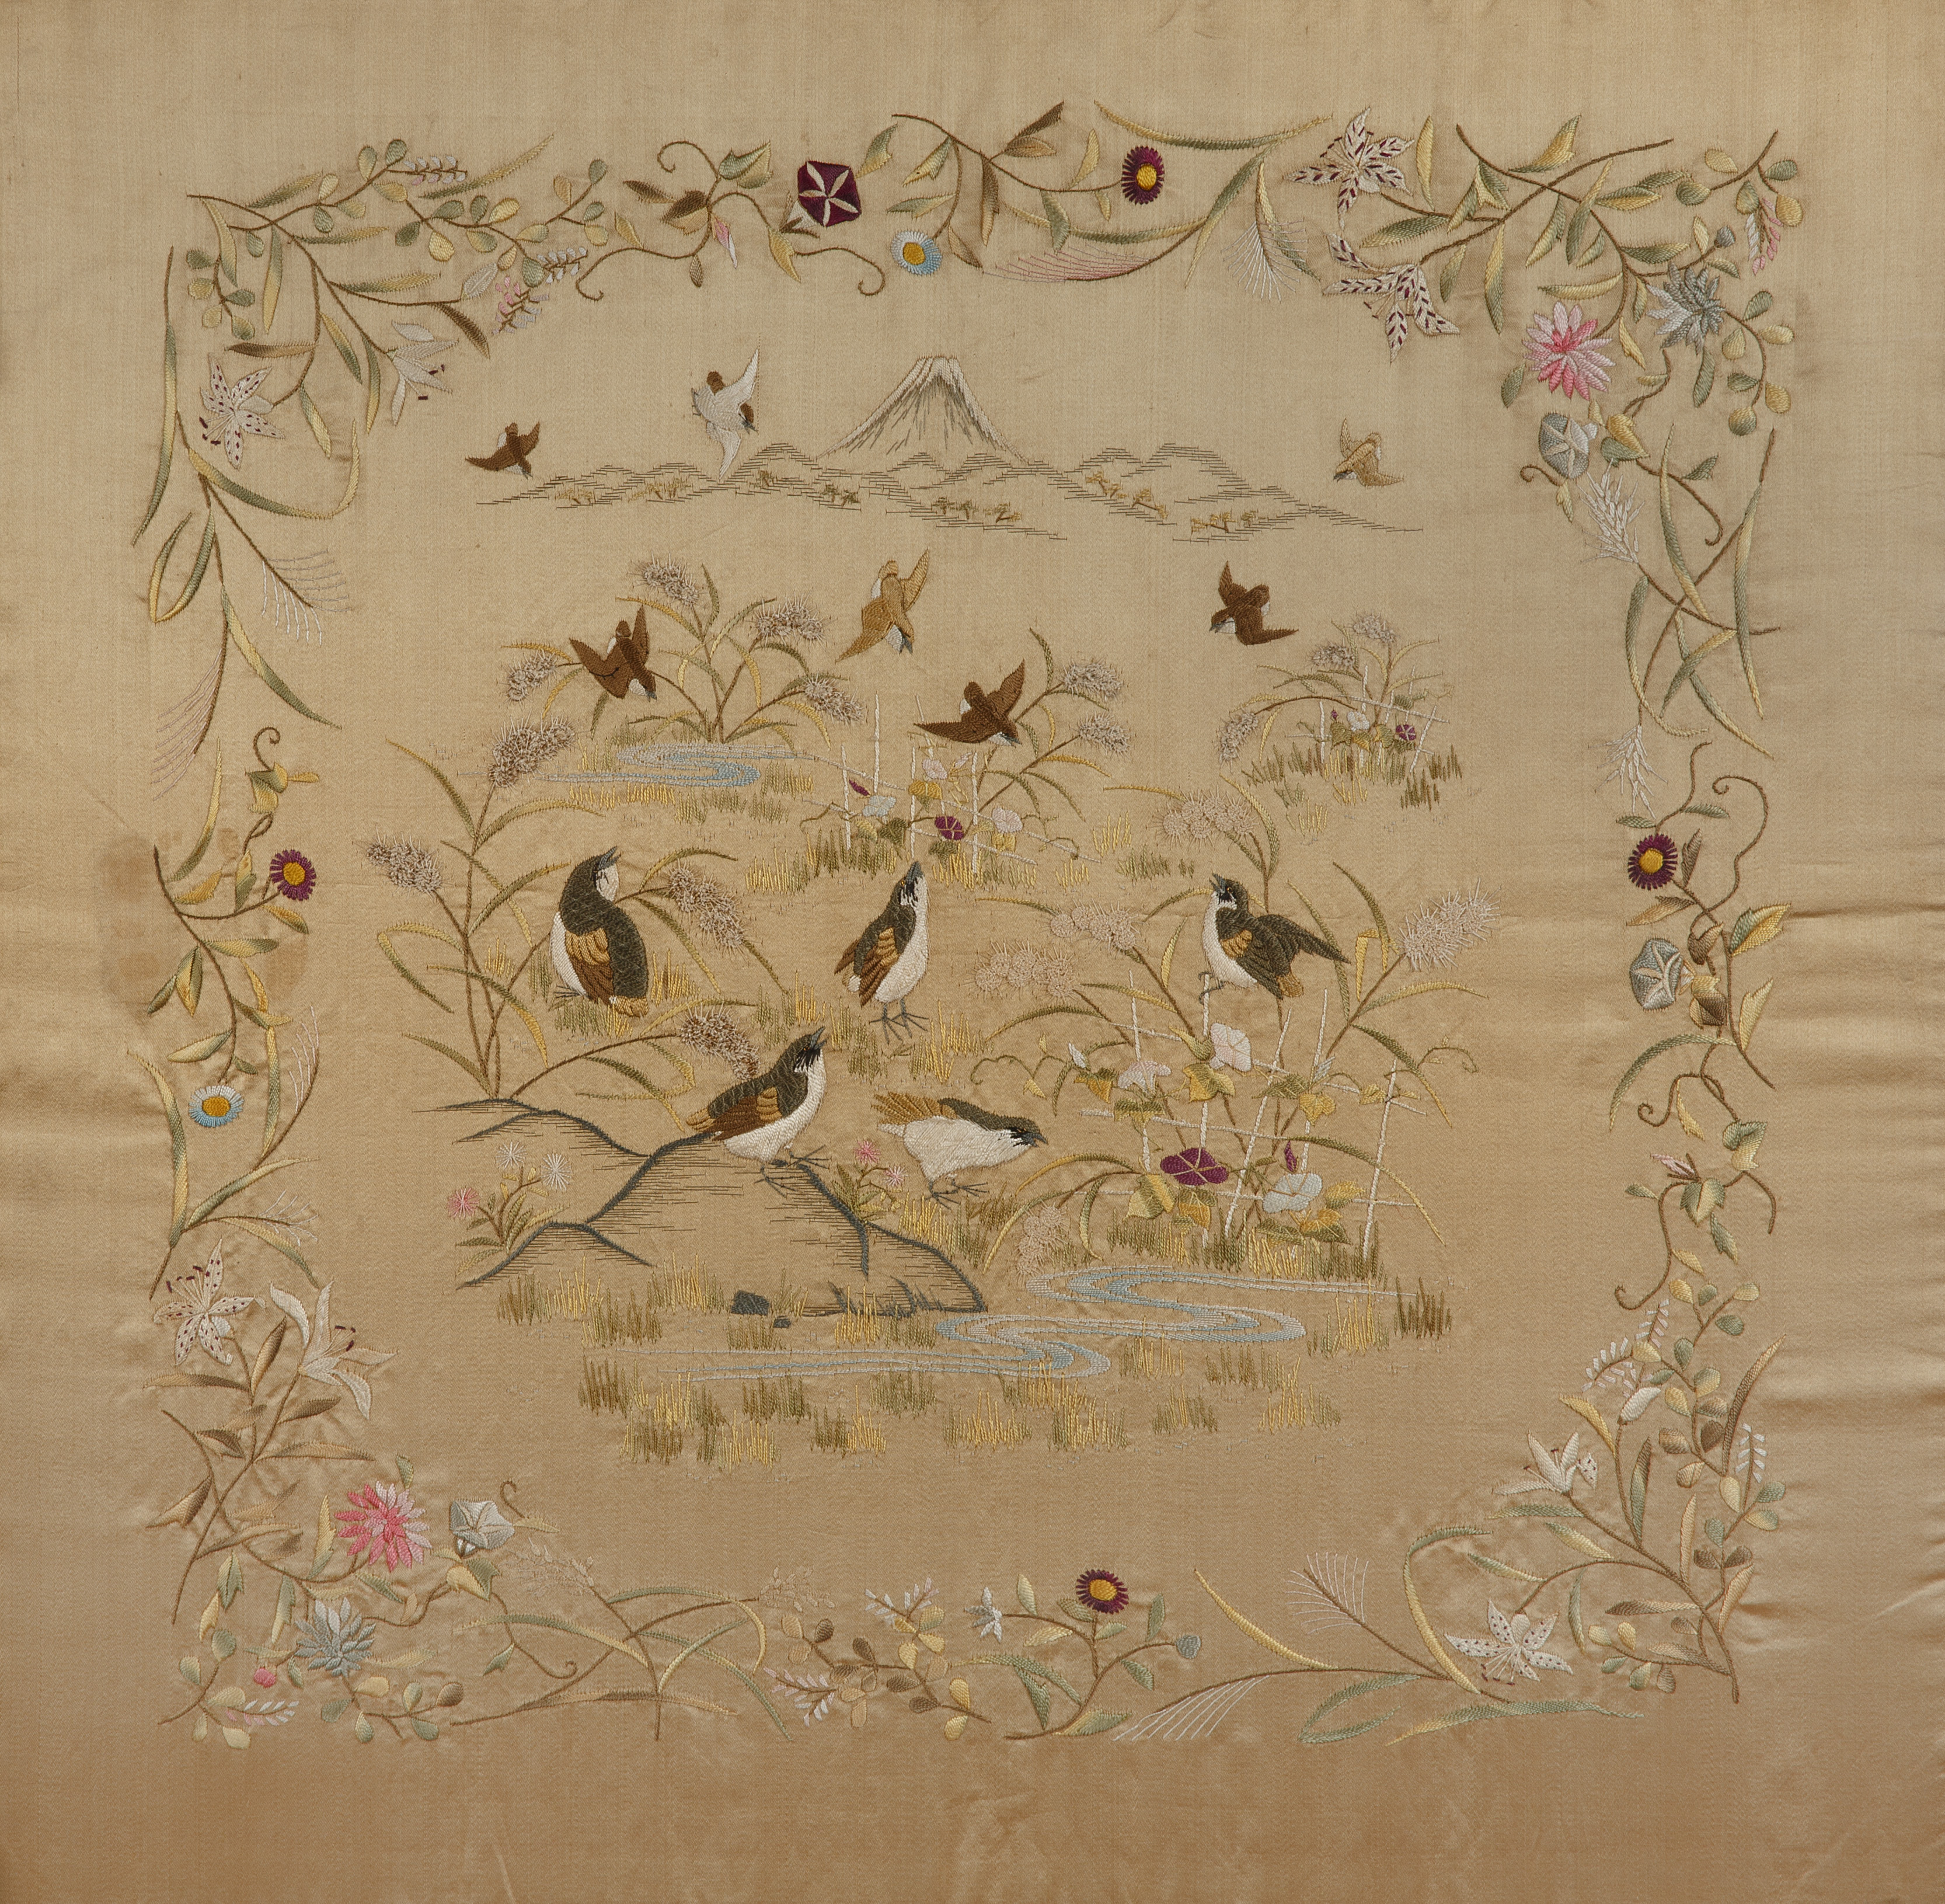 JAPANESE-STYLE FLOWER AND BIRD SILK EMBROIDERY - Image 2 of 5